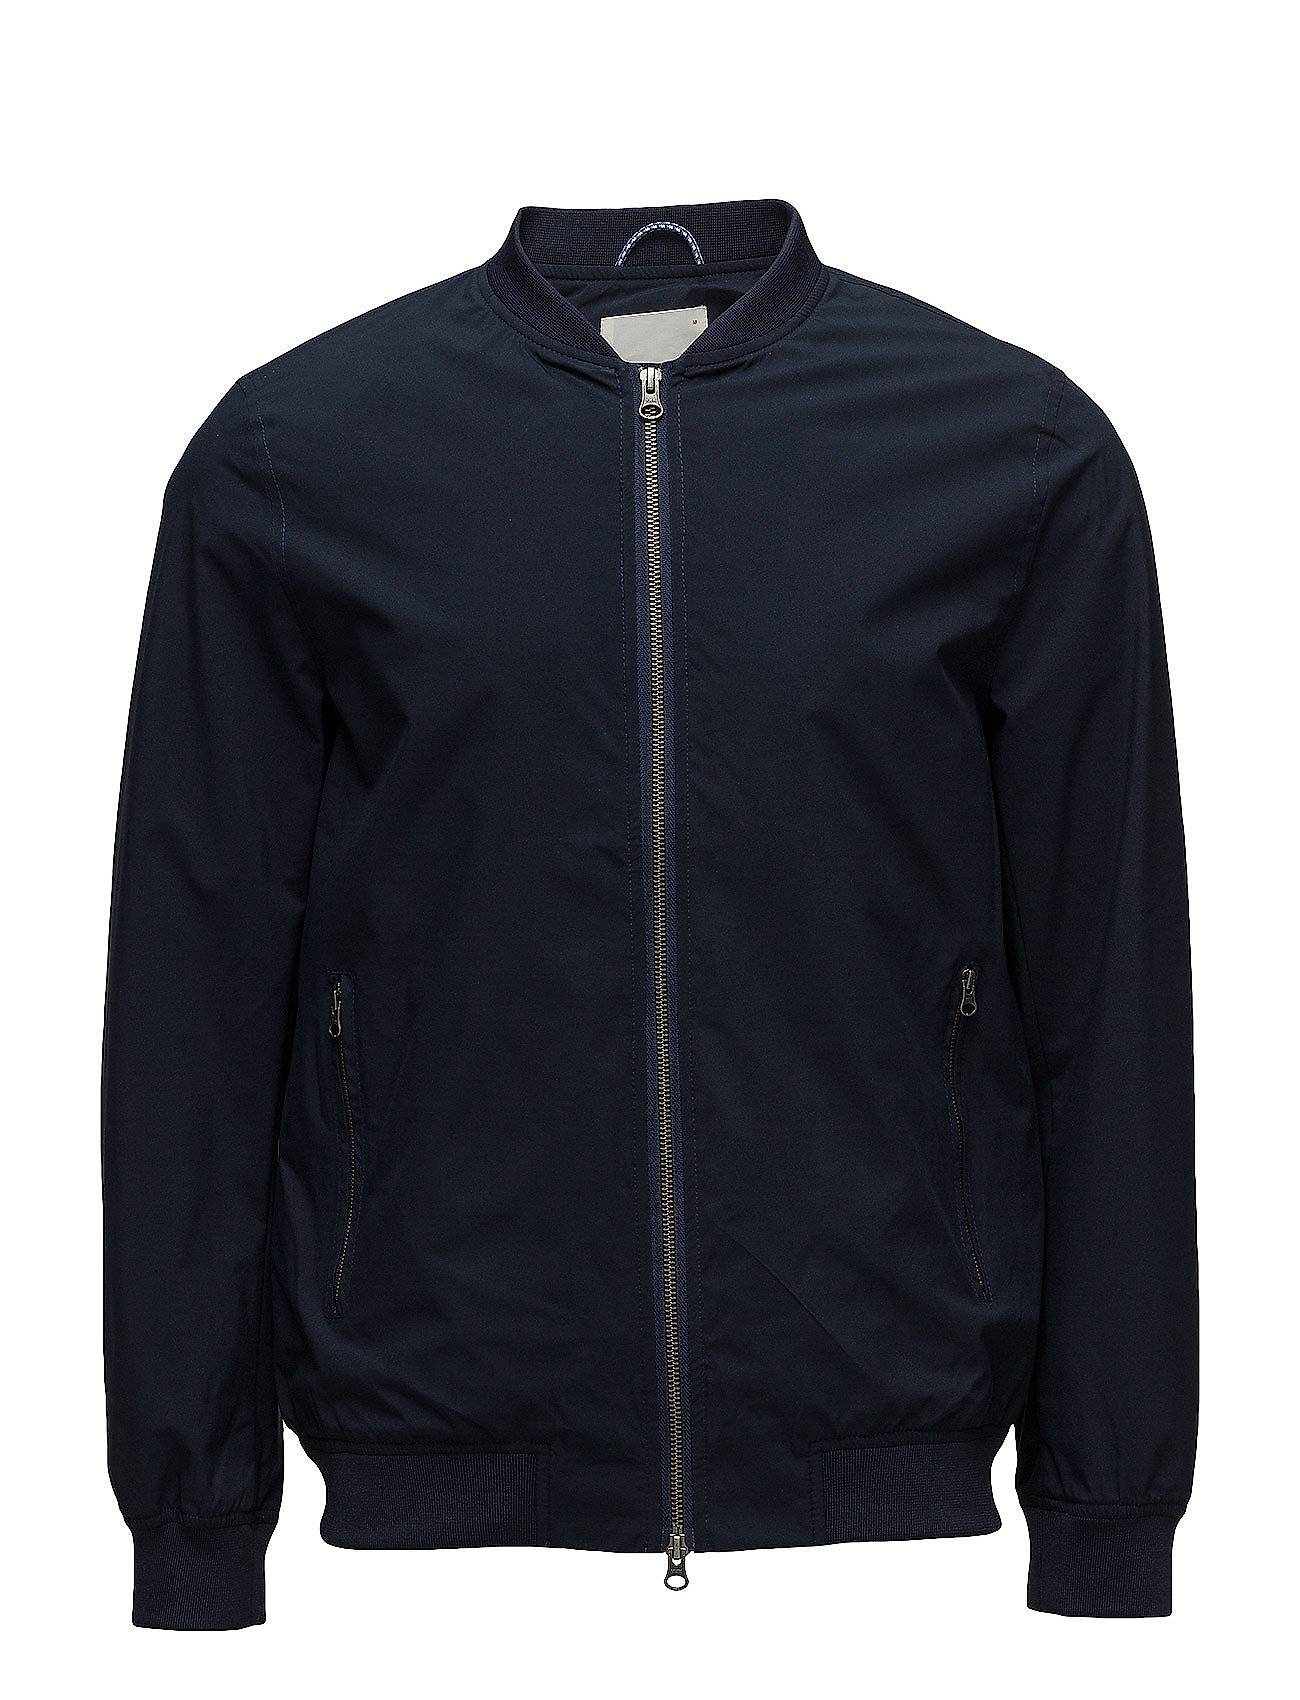 Knowledge Cotton Apparel Funtional Bomber Jacket - Yes